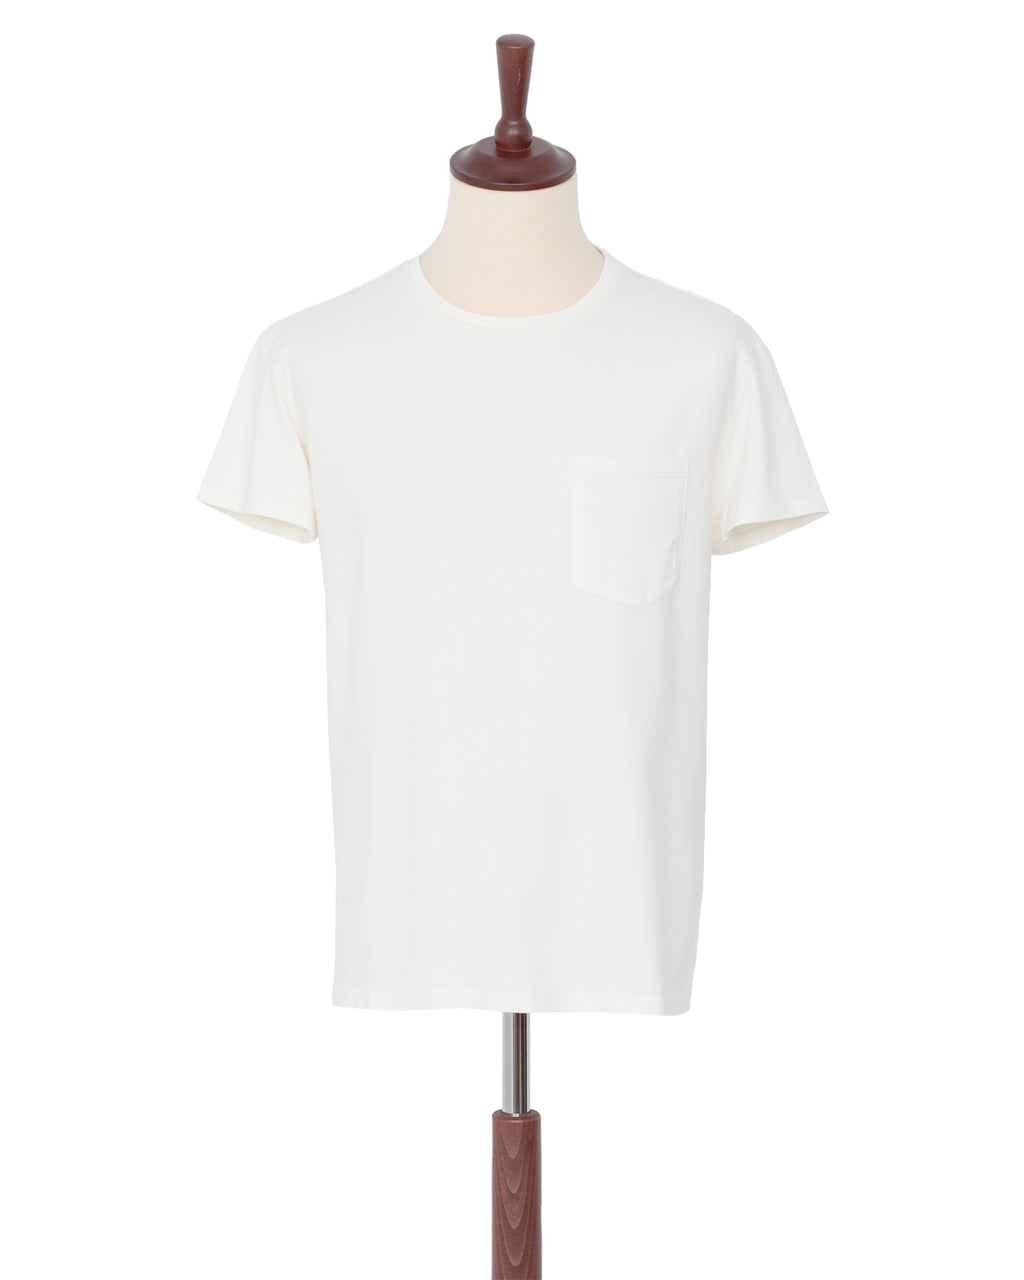 Indigofera Wilson T-Shirt, Cocatoo White